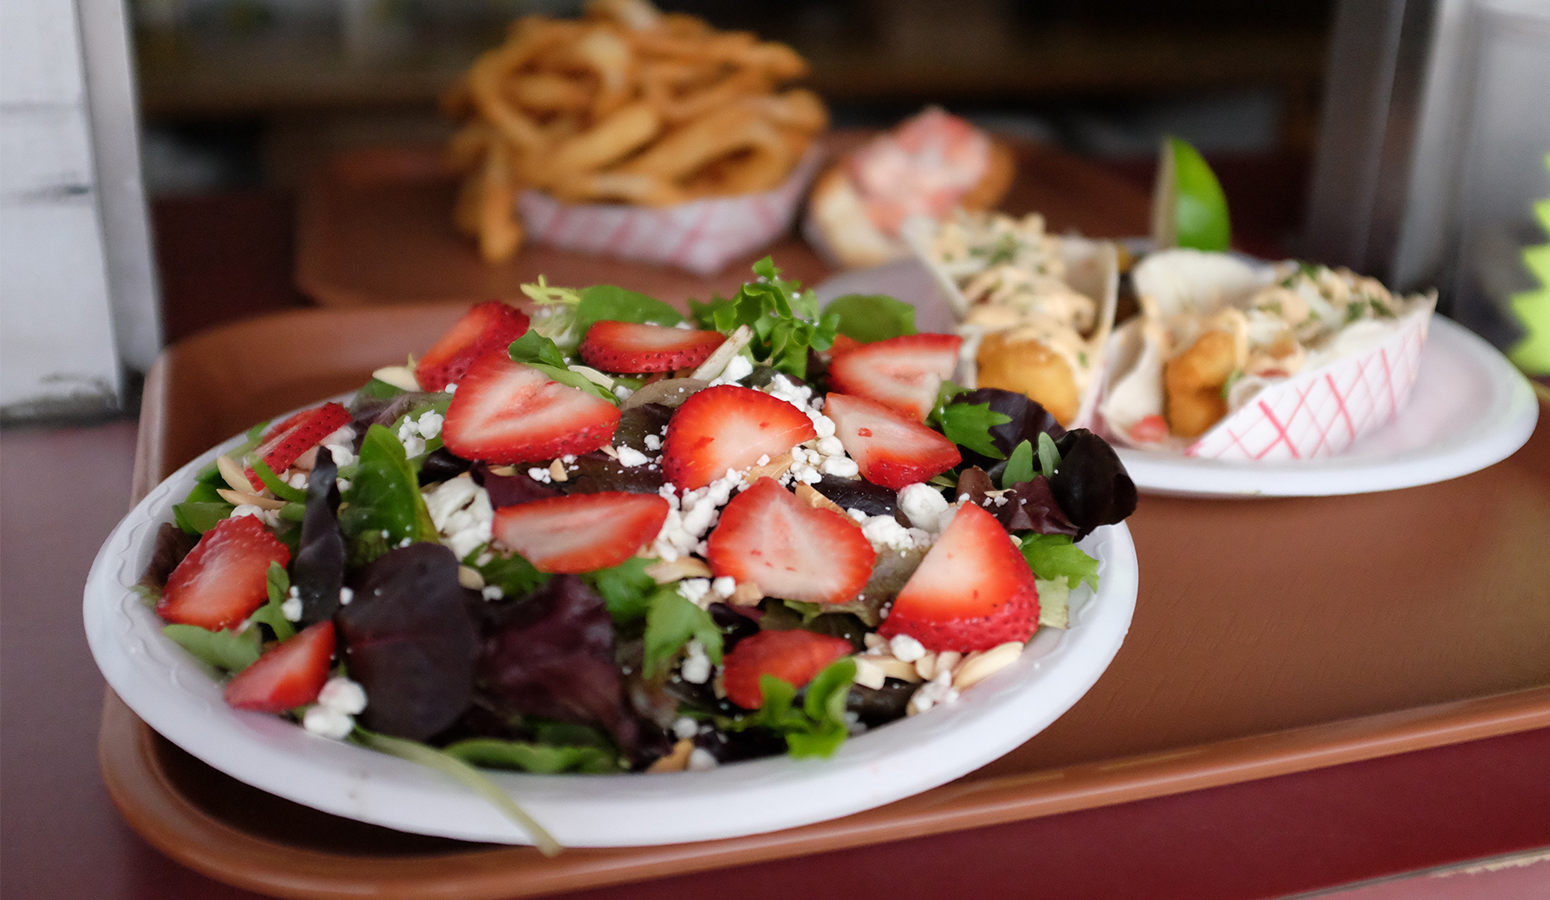 strawberry salad topped with feta cheese